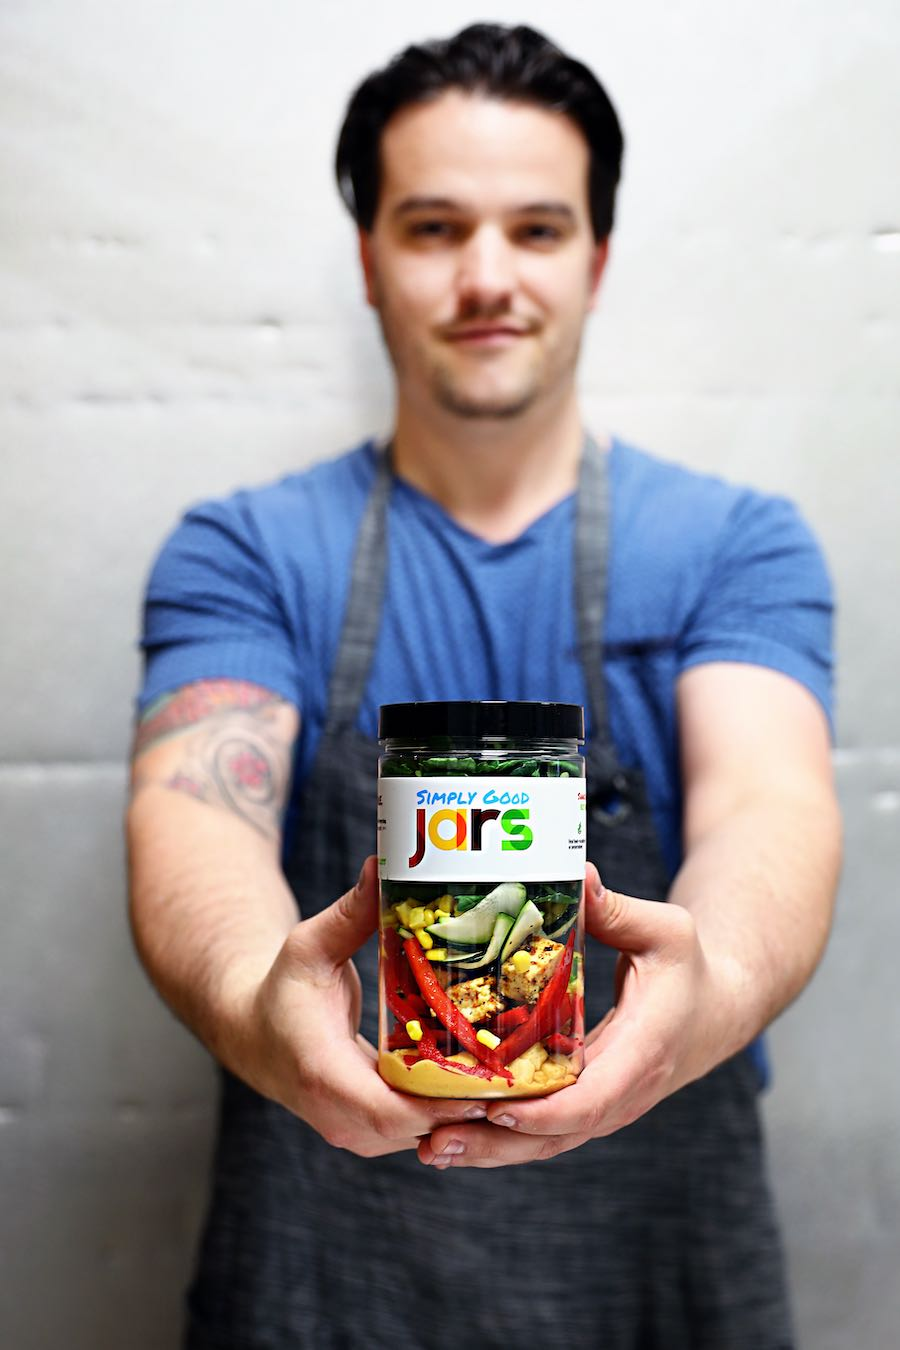 simply good jars founder jared cannon, who will appear on the new shark tank episode this week